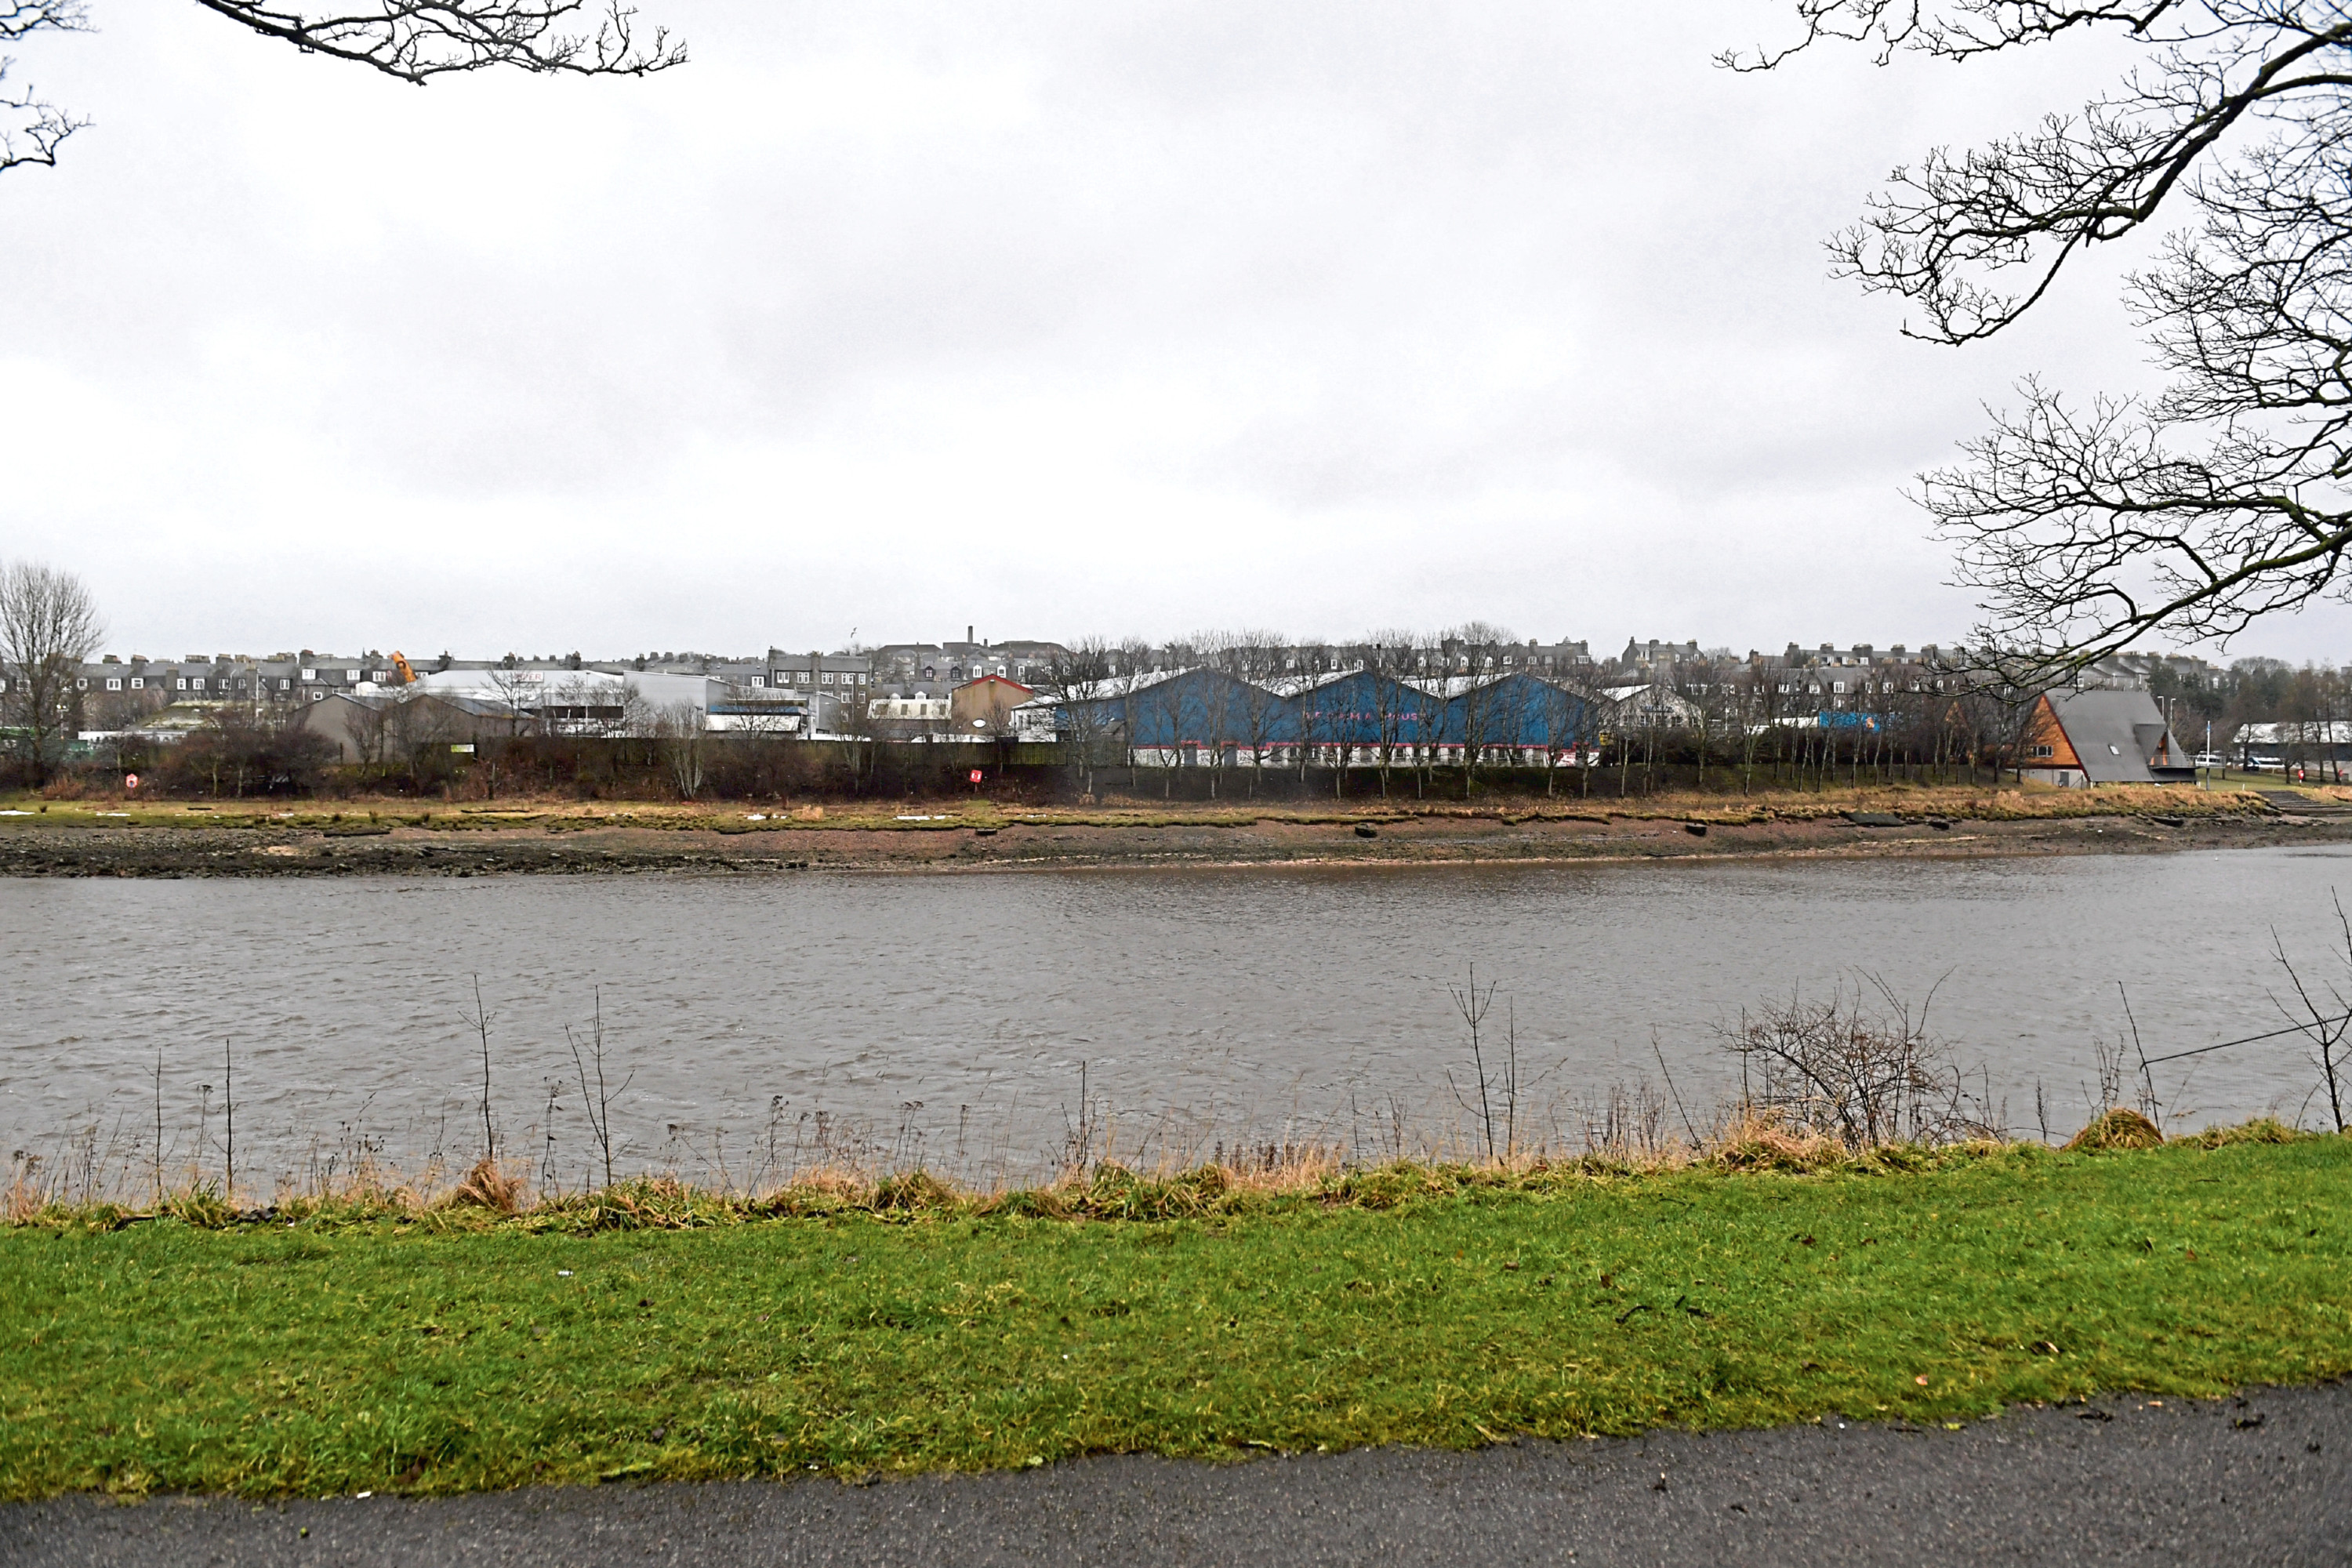 A residentential development is planned for the waterfront, promising to 'revitalise' the area